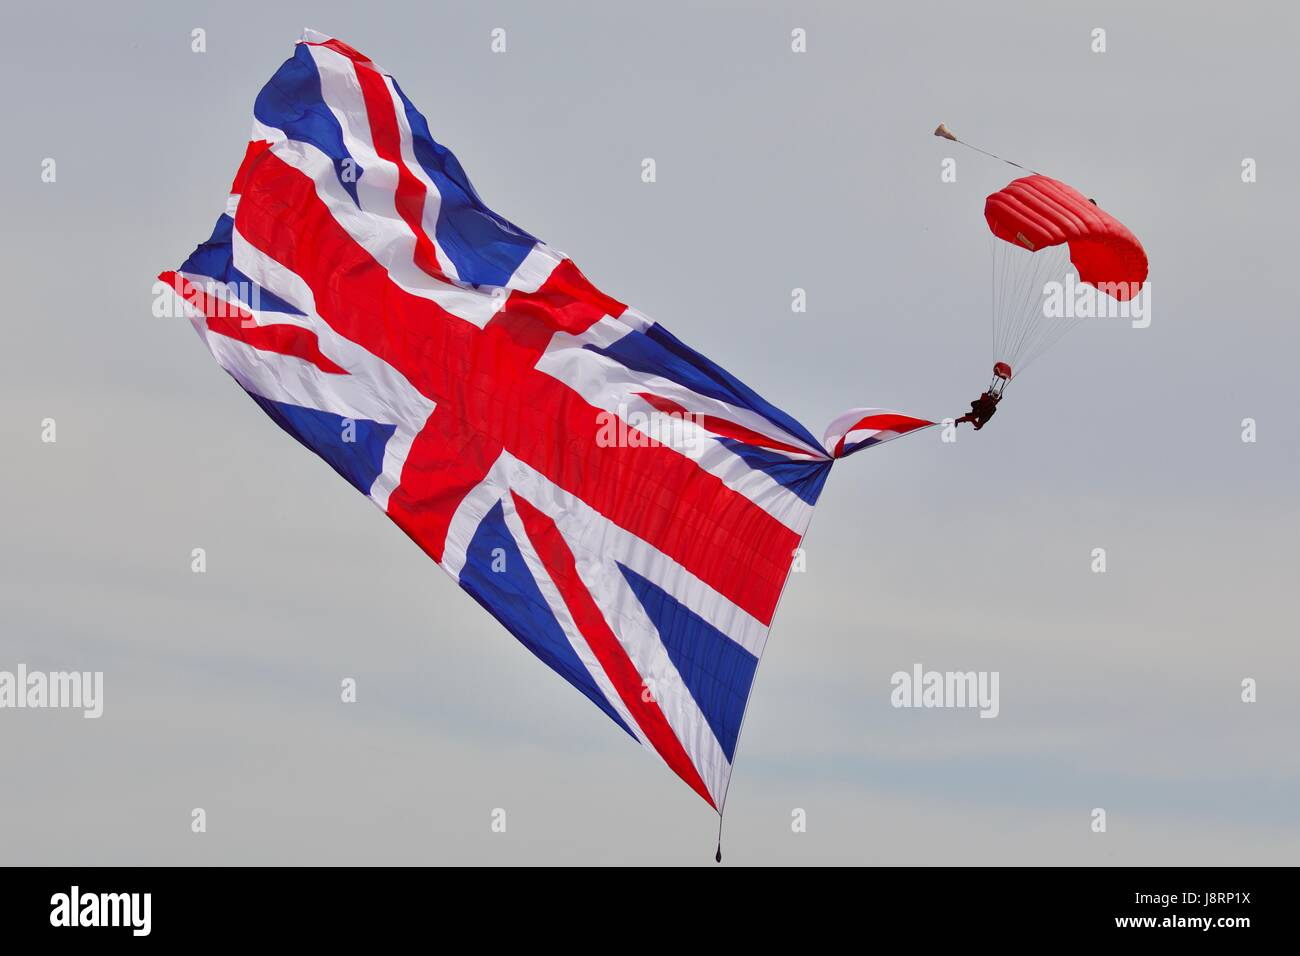 The Red Devils parachute display team with a giant union jack flag - Stock Image